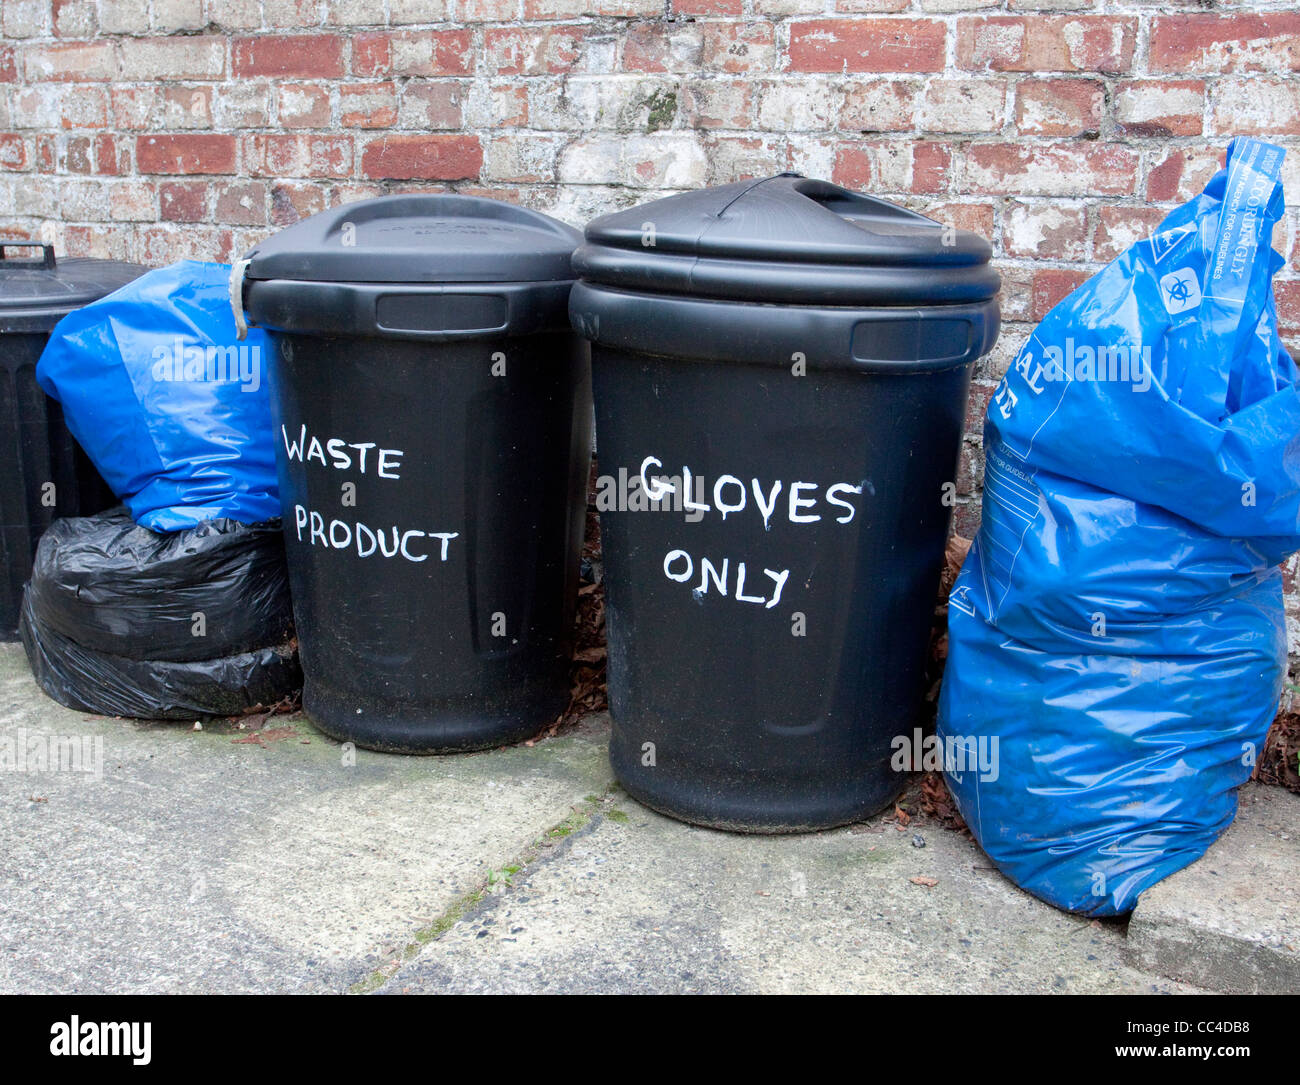 waste disposal contaminated products health and safetywaste disposal contaminated products health and safety environmental - Stock Image